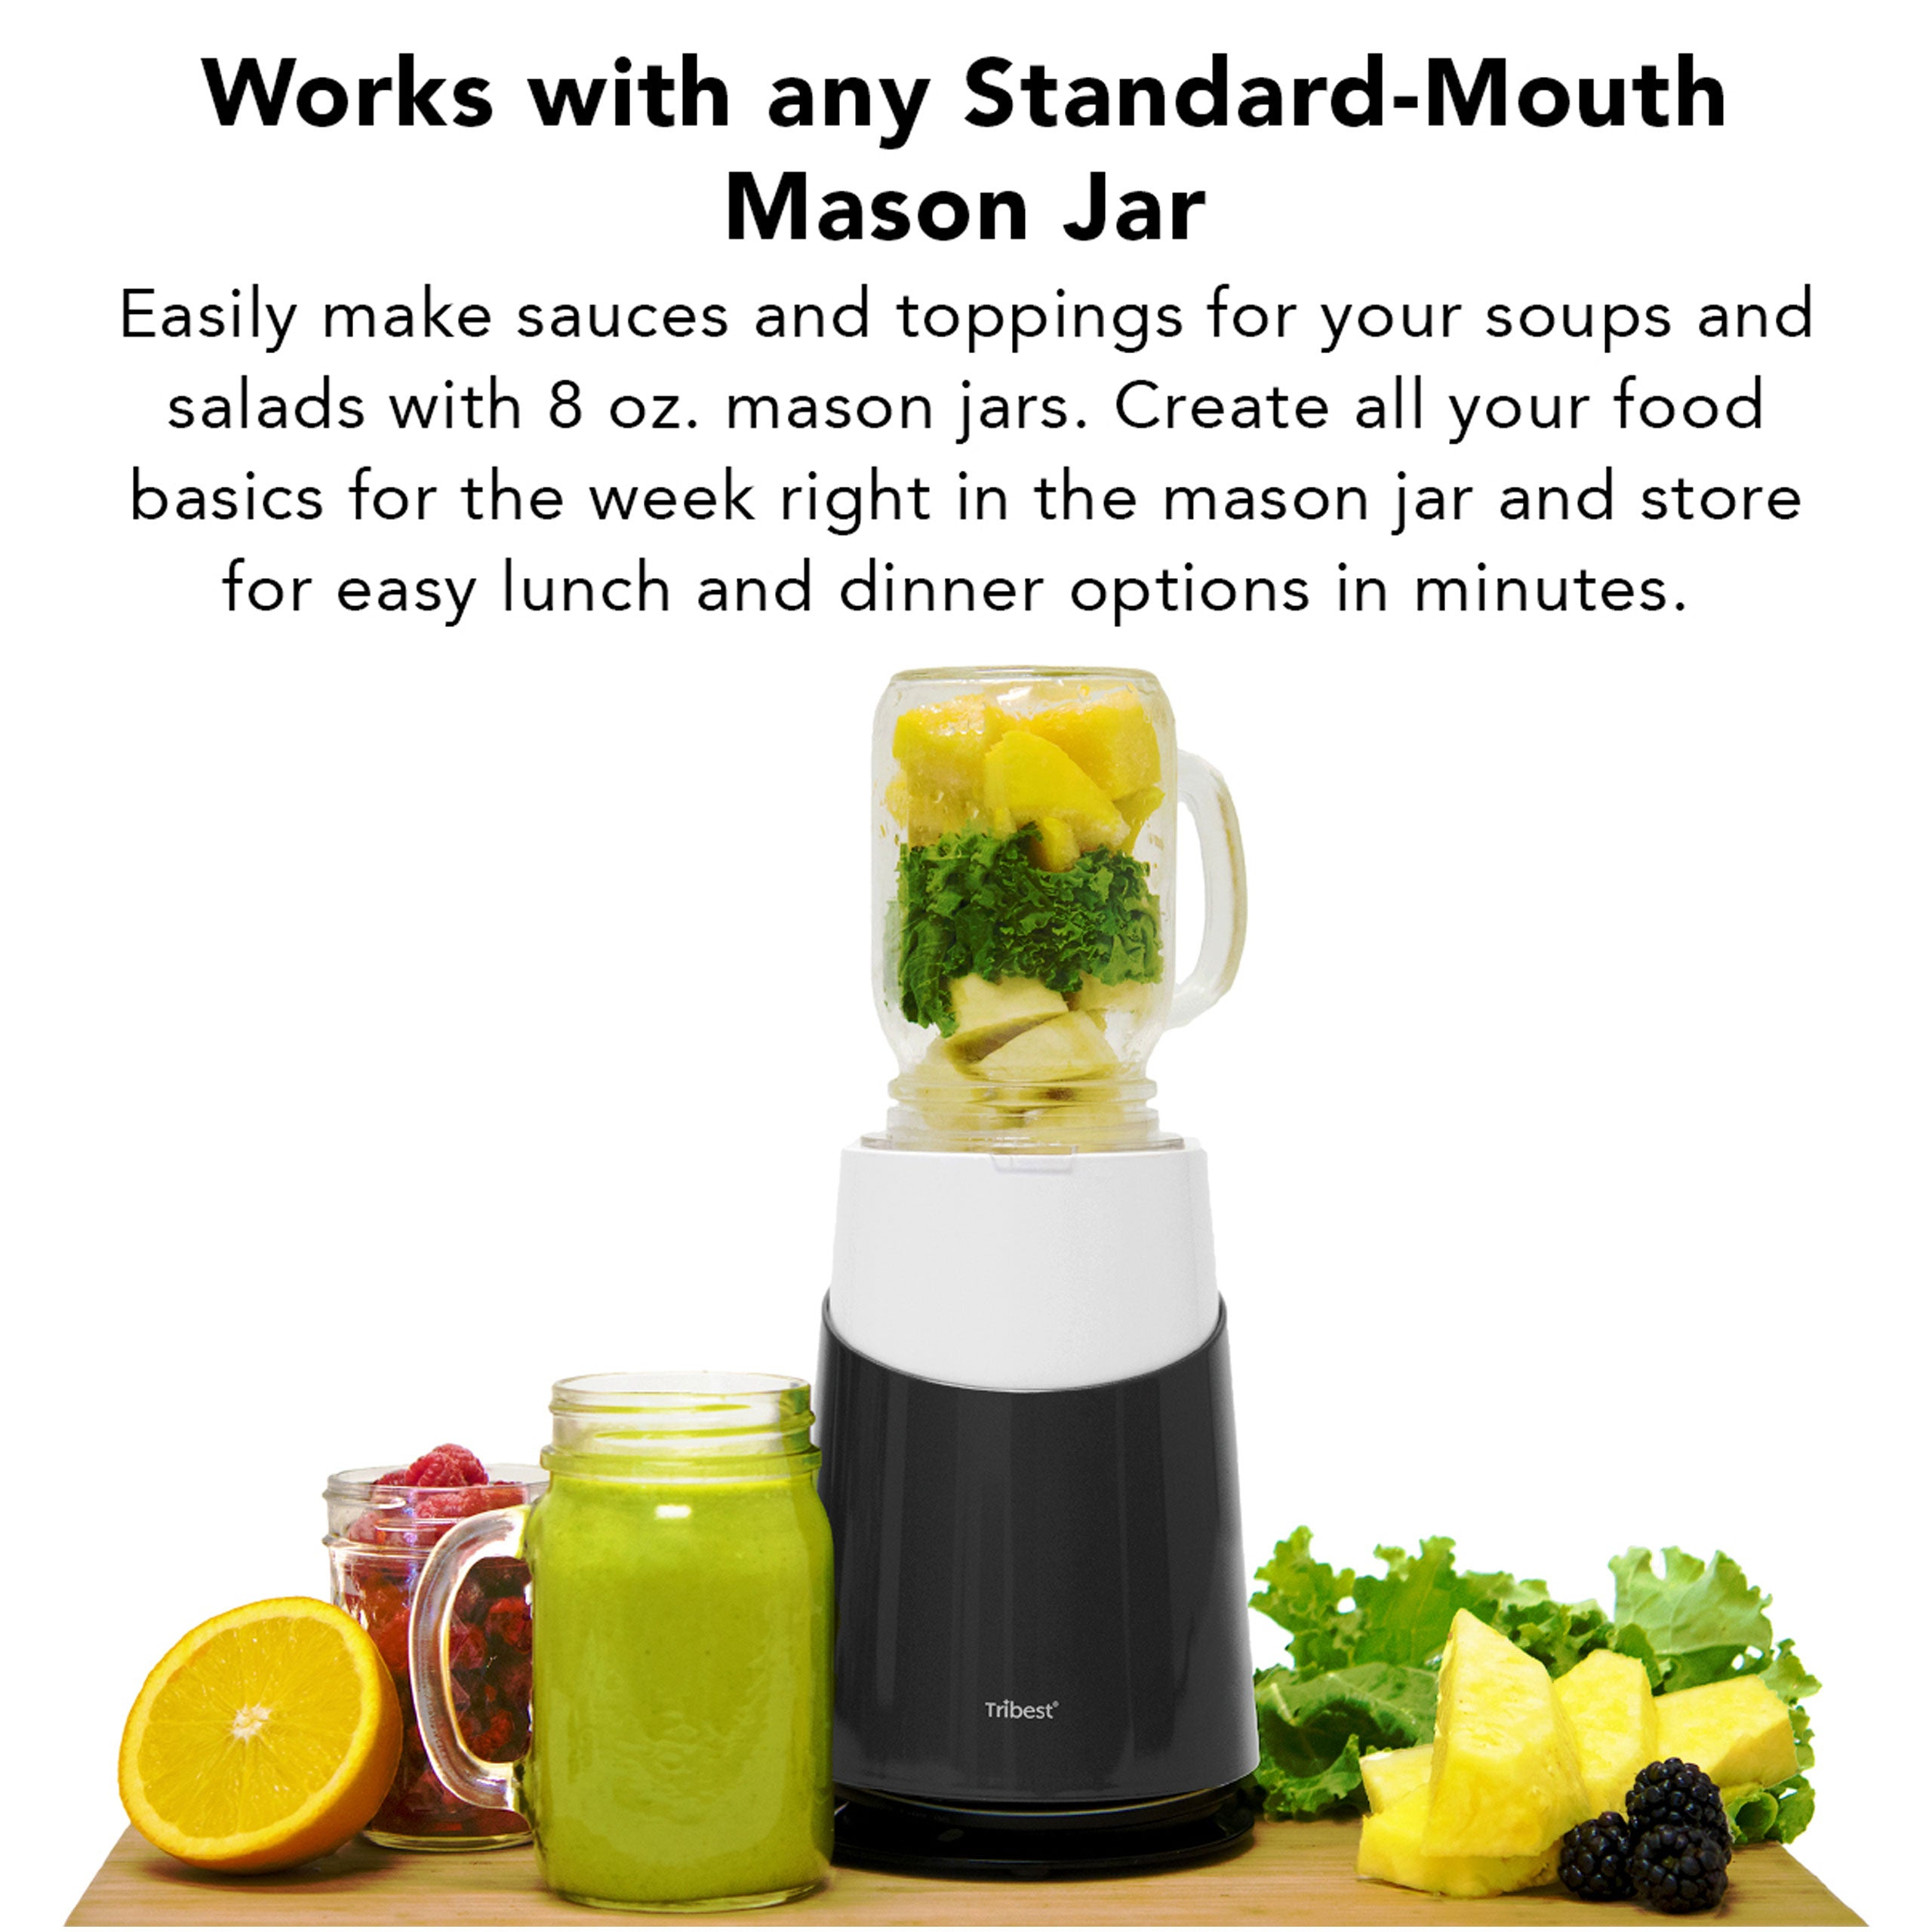 Personal Blender II® Mason Jar Ready (Basic with Mason Jar Mug 12-Piece Set) in Gray PB-430GY-A - Works with any Standard-Mouth Mason Jar - Tribest